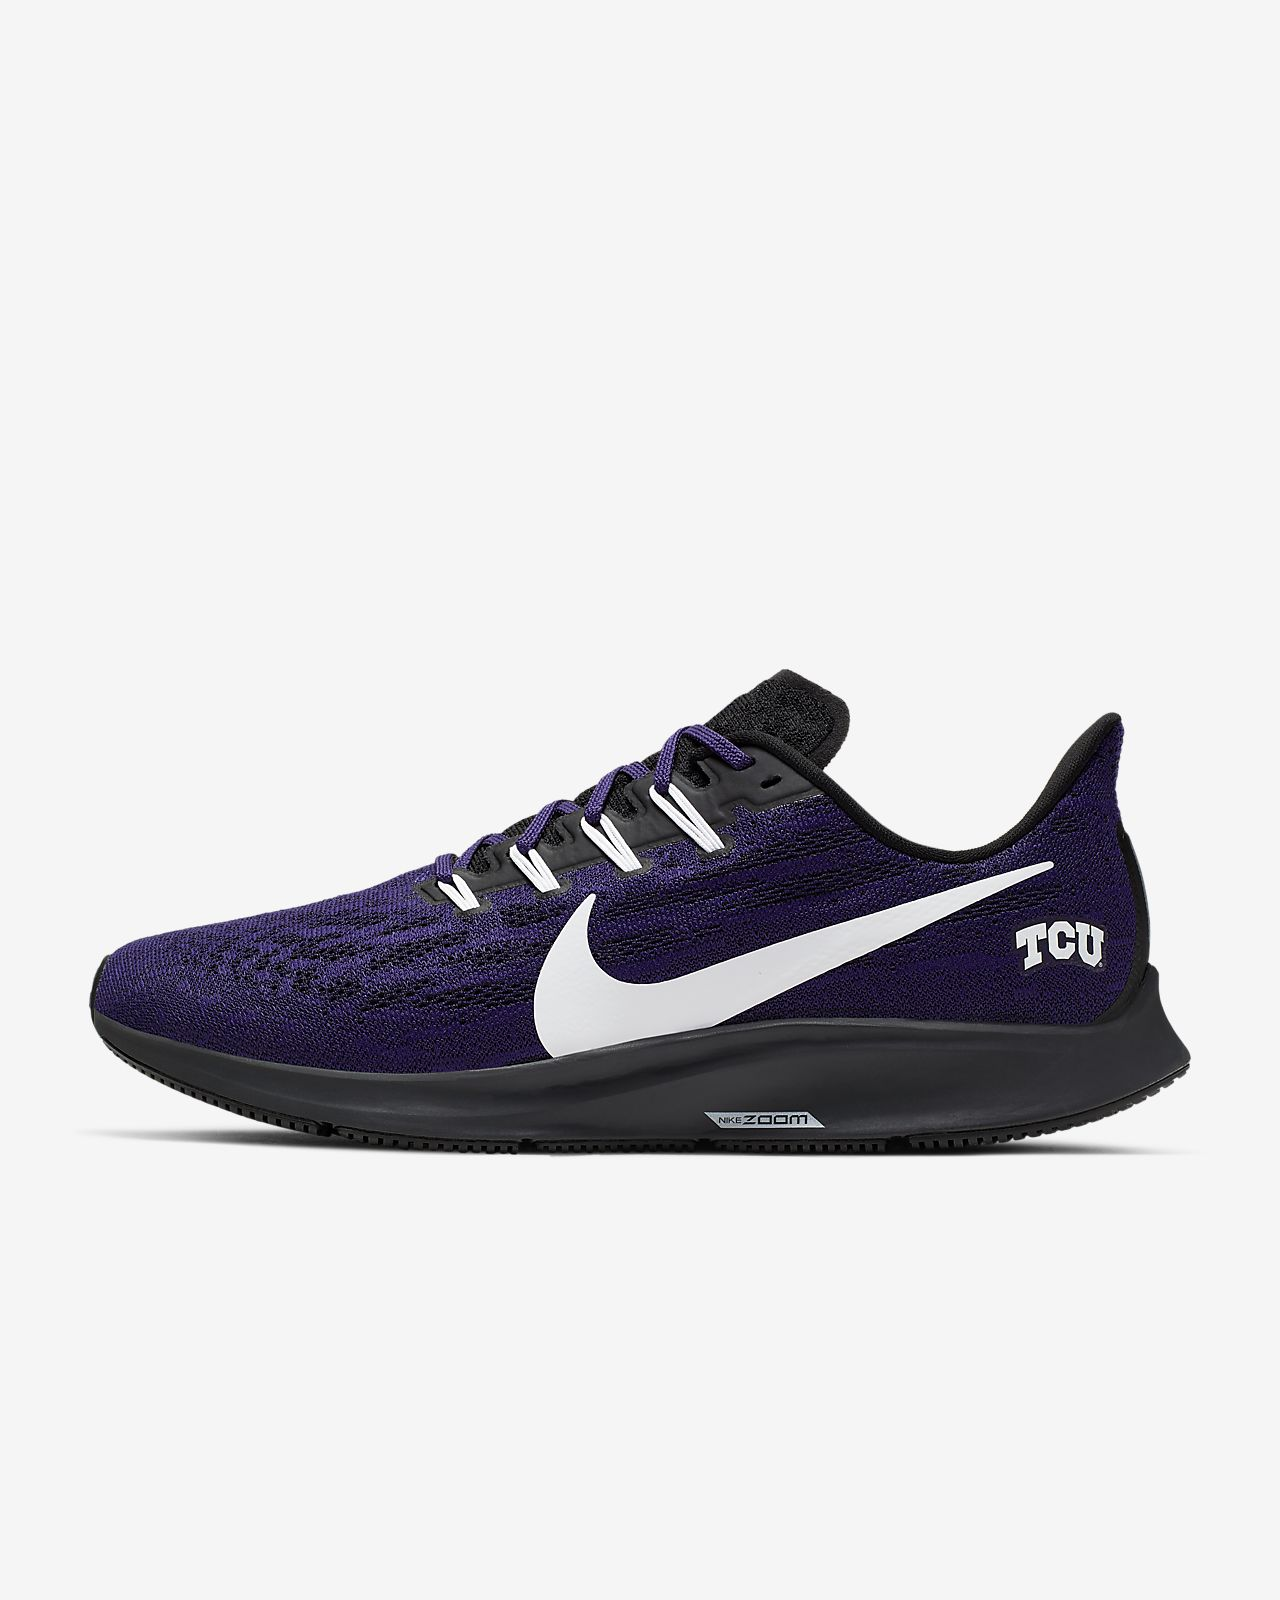 Nike Air Zoom Pegasus 36 (TCU) Men's Running Shoe